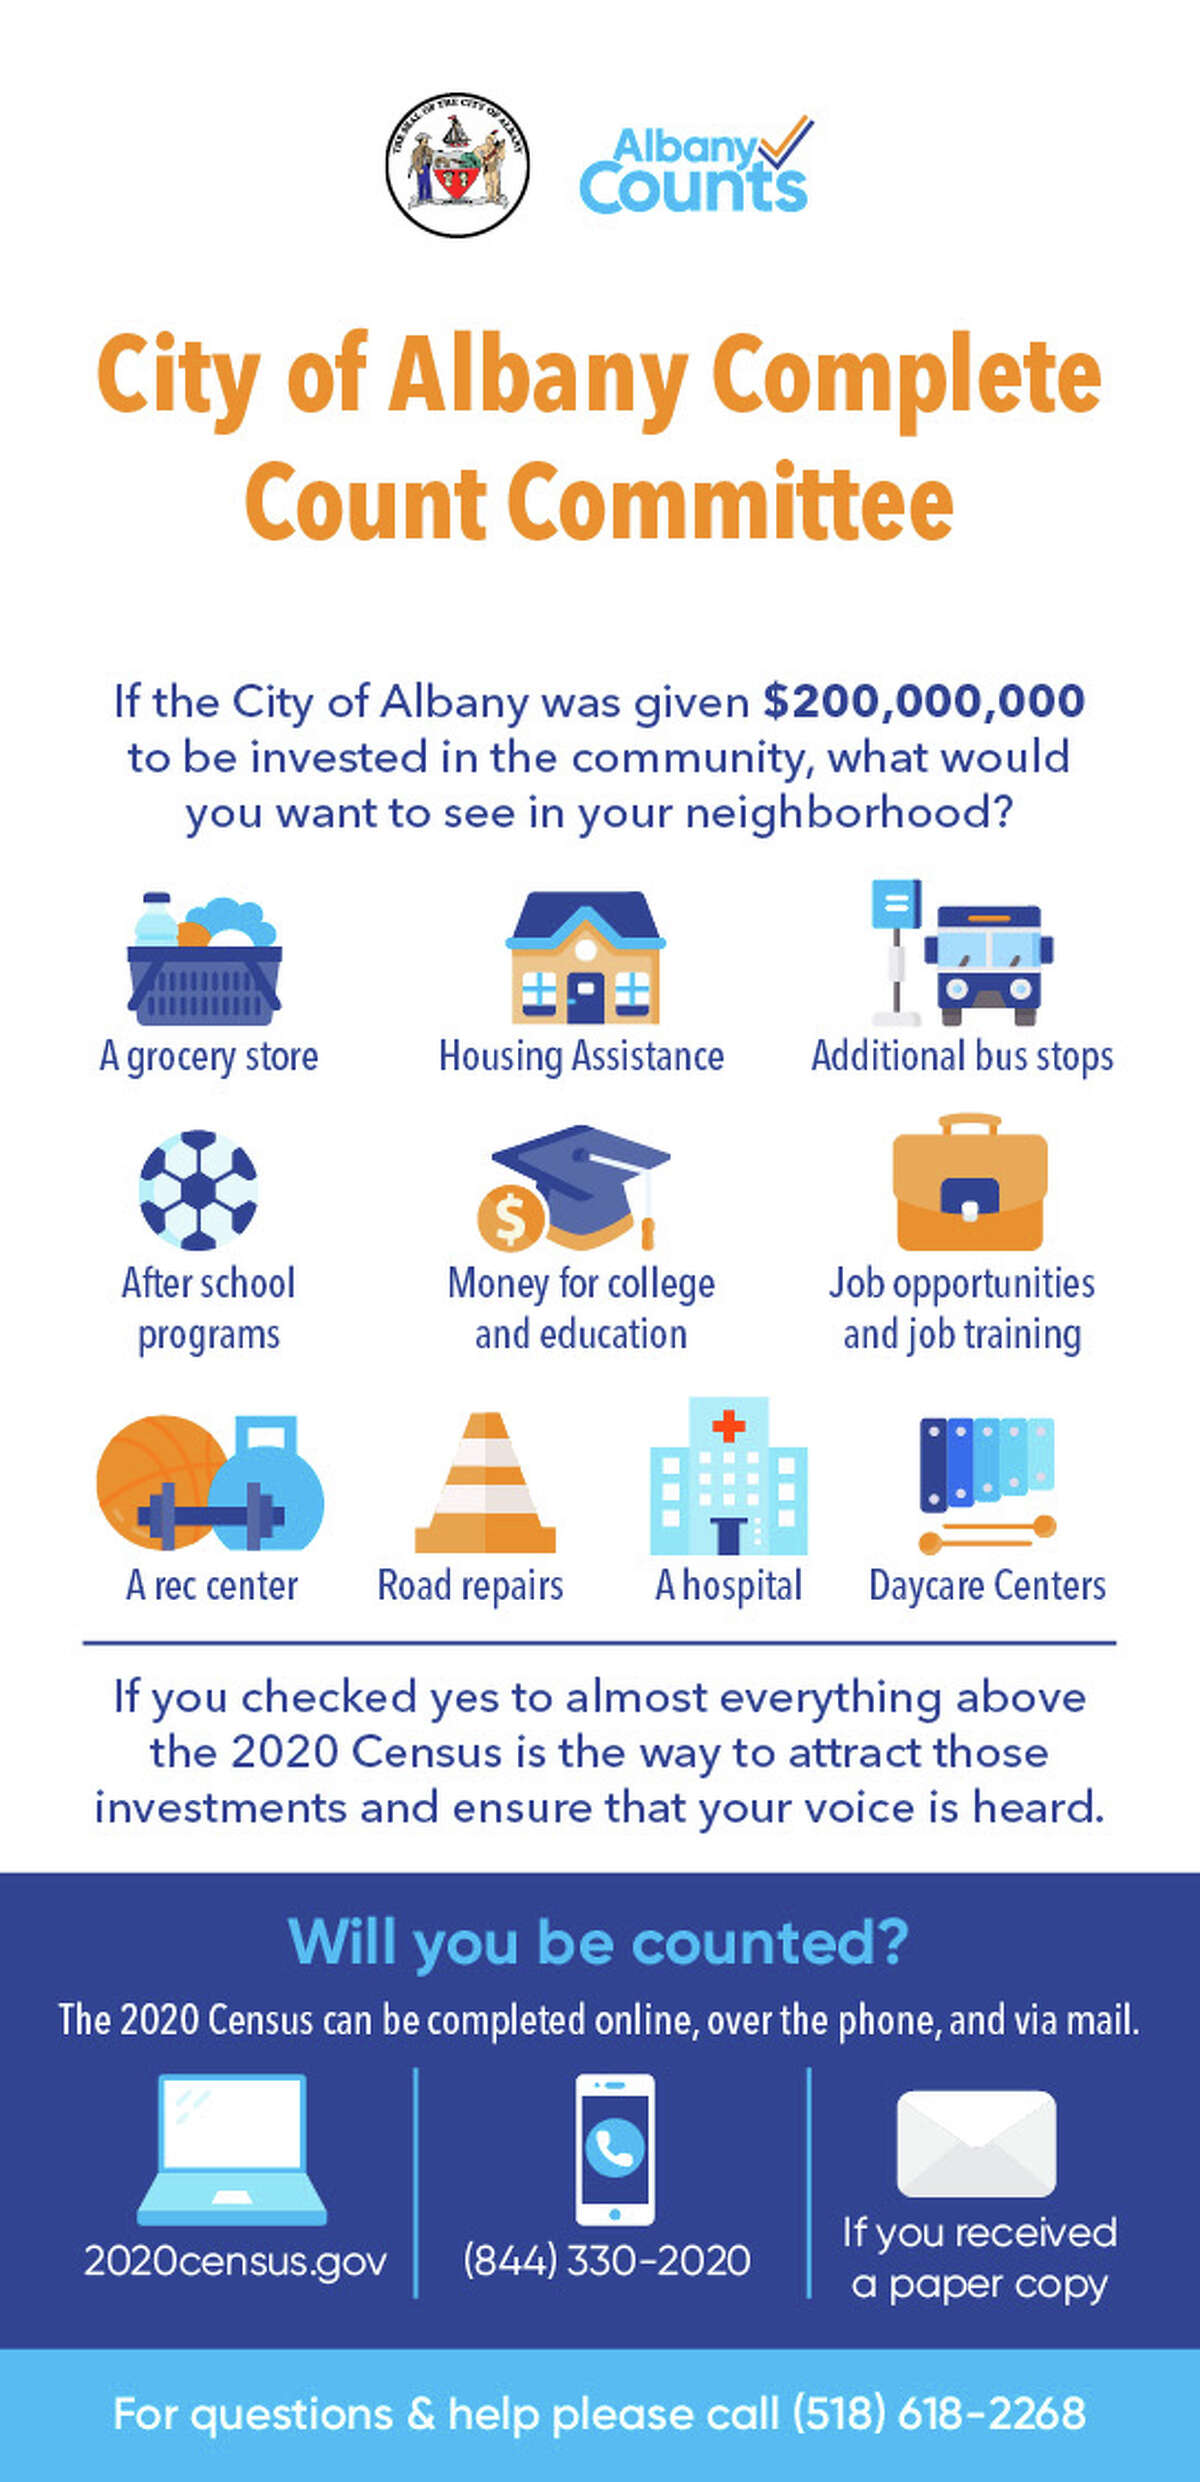 The Albany Complete Count Committee door hanger to be left at residences in hard to count neighborhoods.